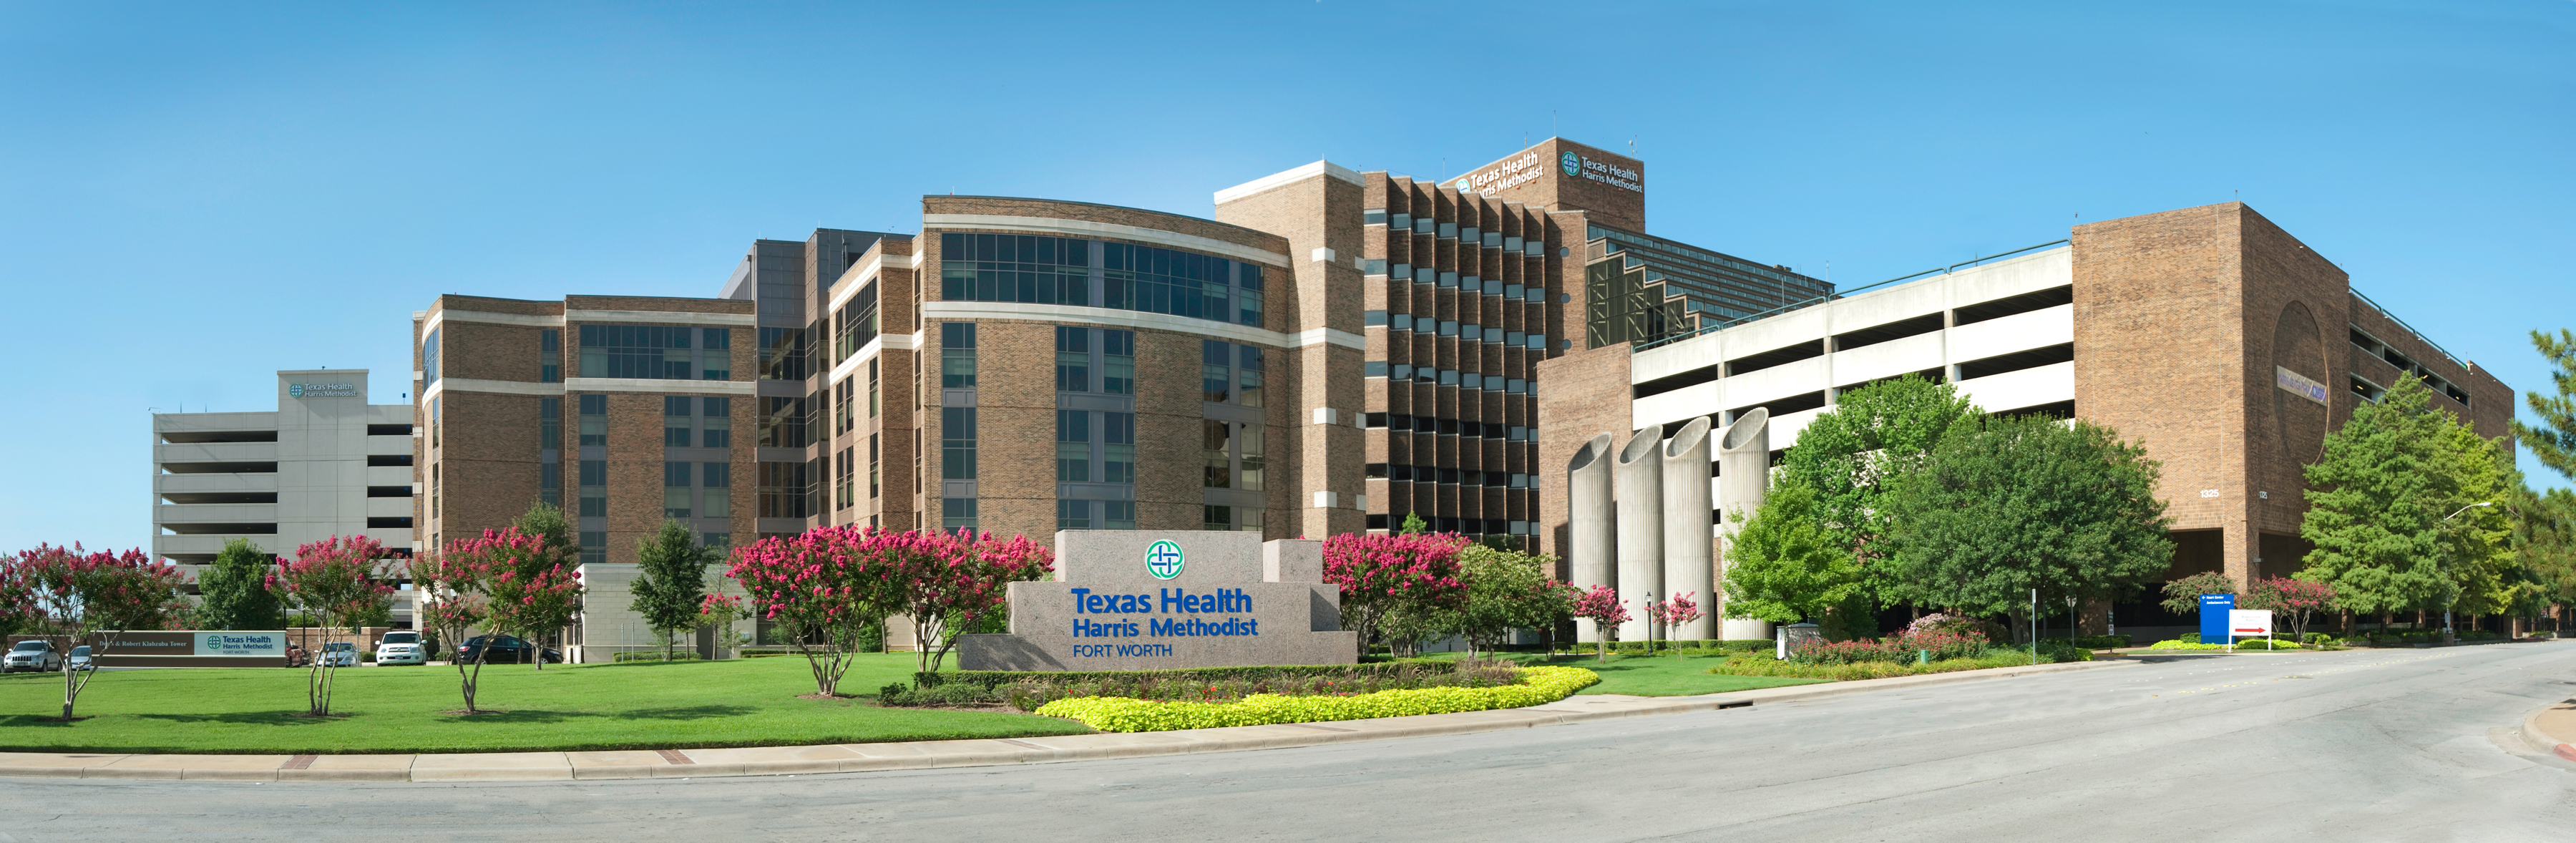 Texas Health Harris Methodist Hospital Southwest Fort. Printable Business Card Paper. Best Company For Homeowners Insurance. James Taylor Heroin Addiction. Land Rover Discovery G4 Edition. High Yield Savings 2013 Peter Harris Clothing. J Foster Phillips Funeral Home. Dangers Of Birth Control Credit Check Equifax. Best Checking Accounts In Texas